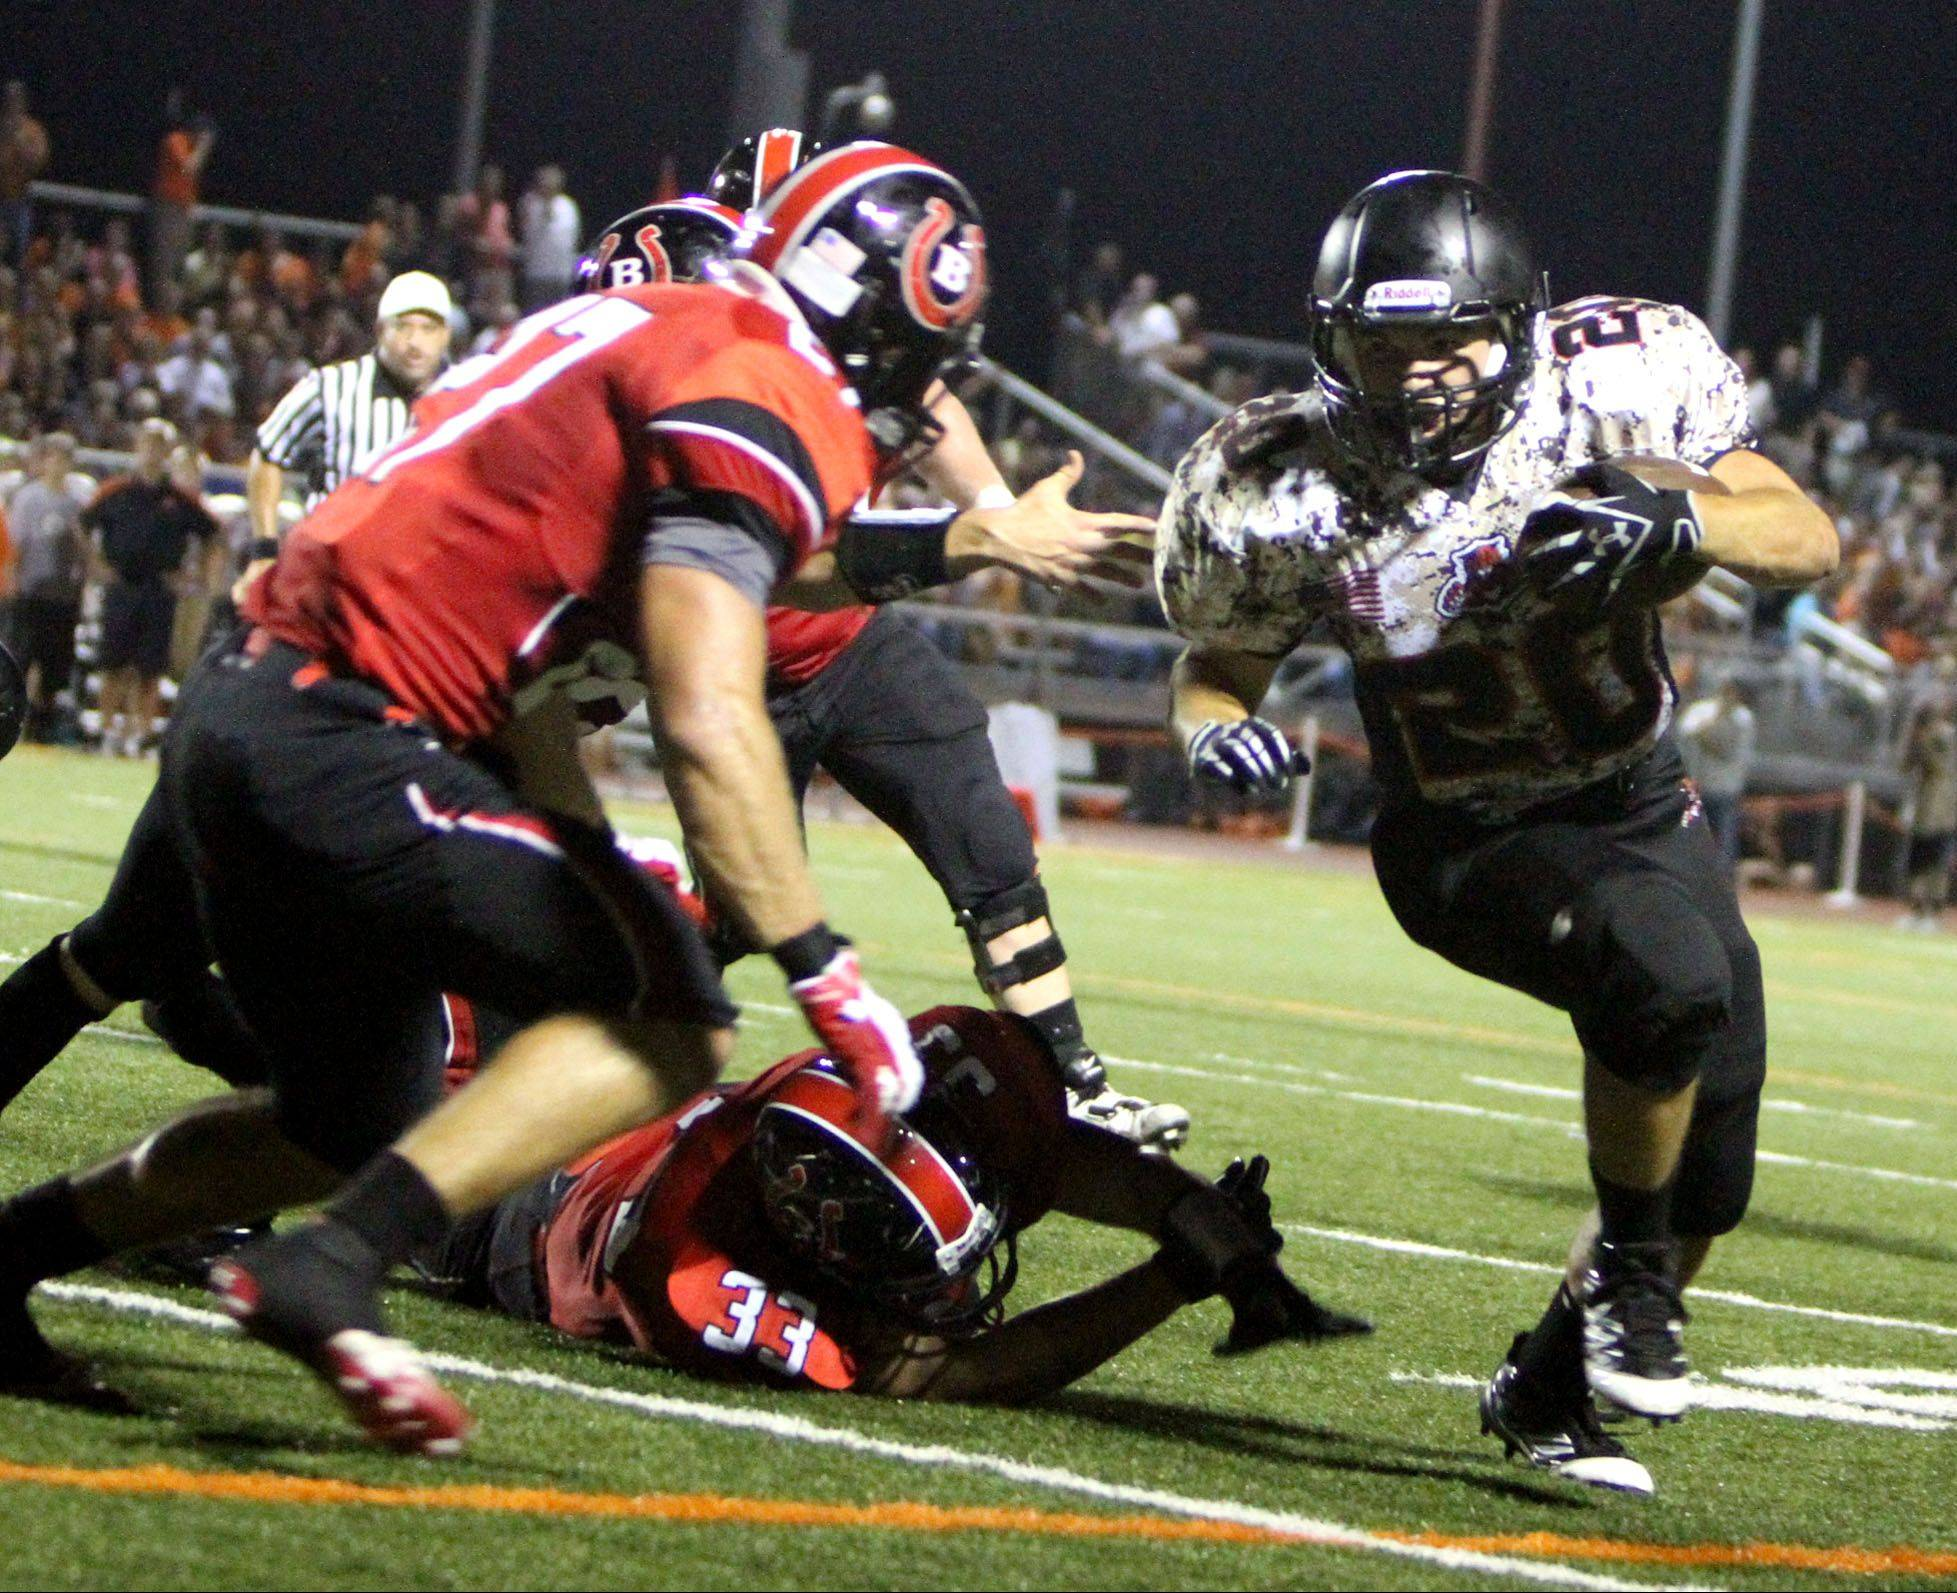 Libertyville's Brian Swift turns the corner against Barrington defenders on Friday night.